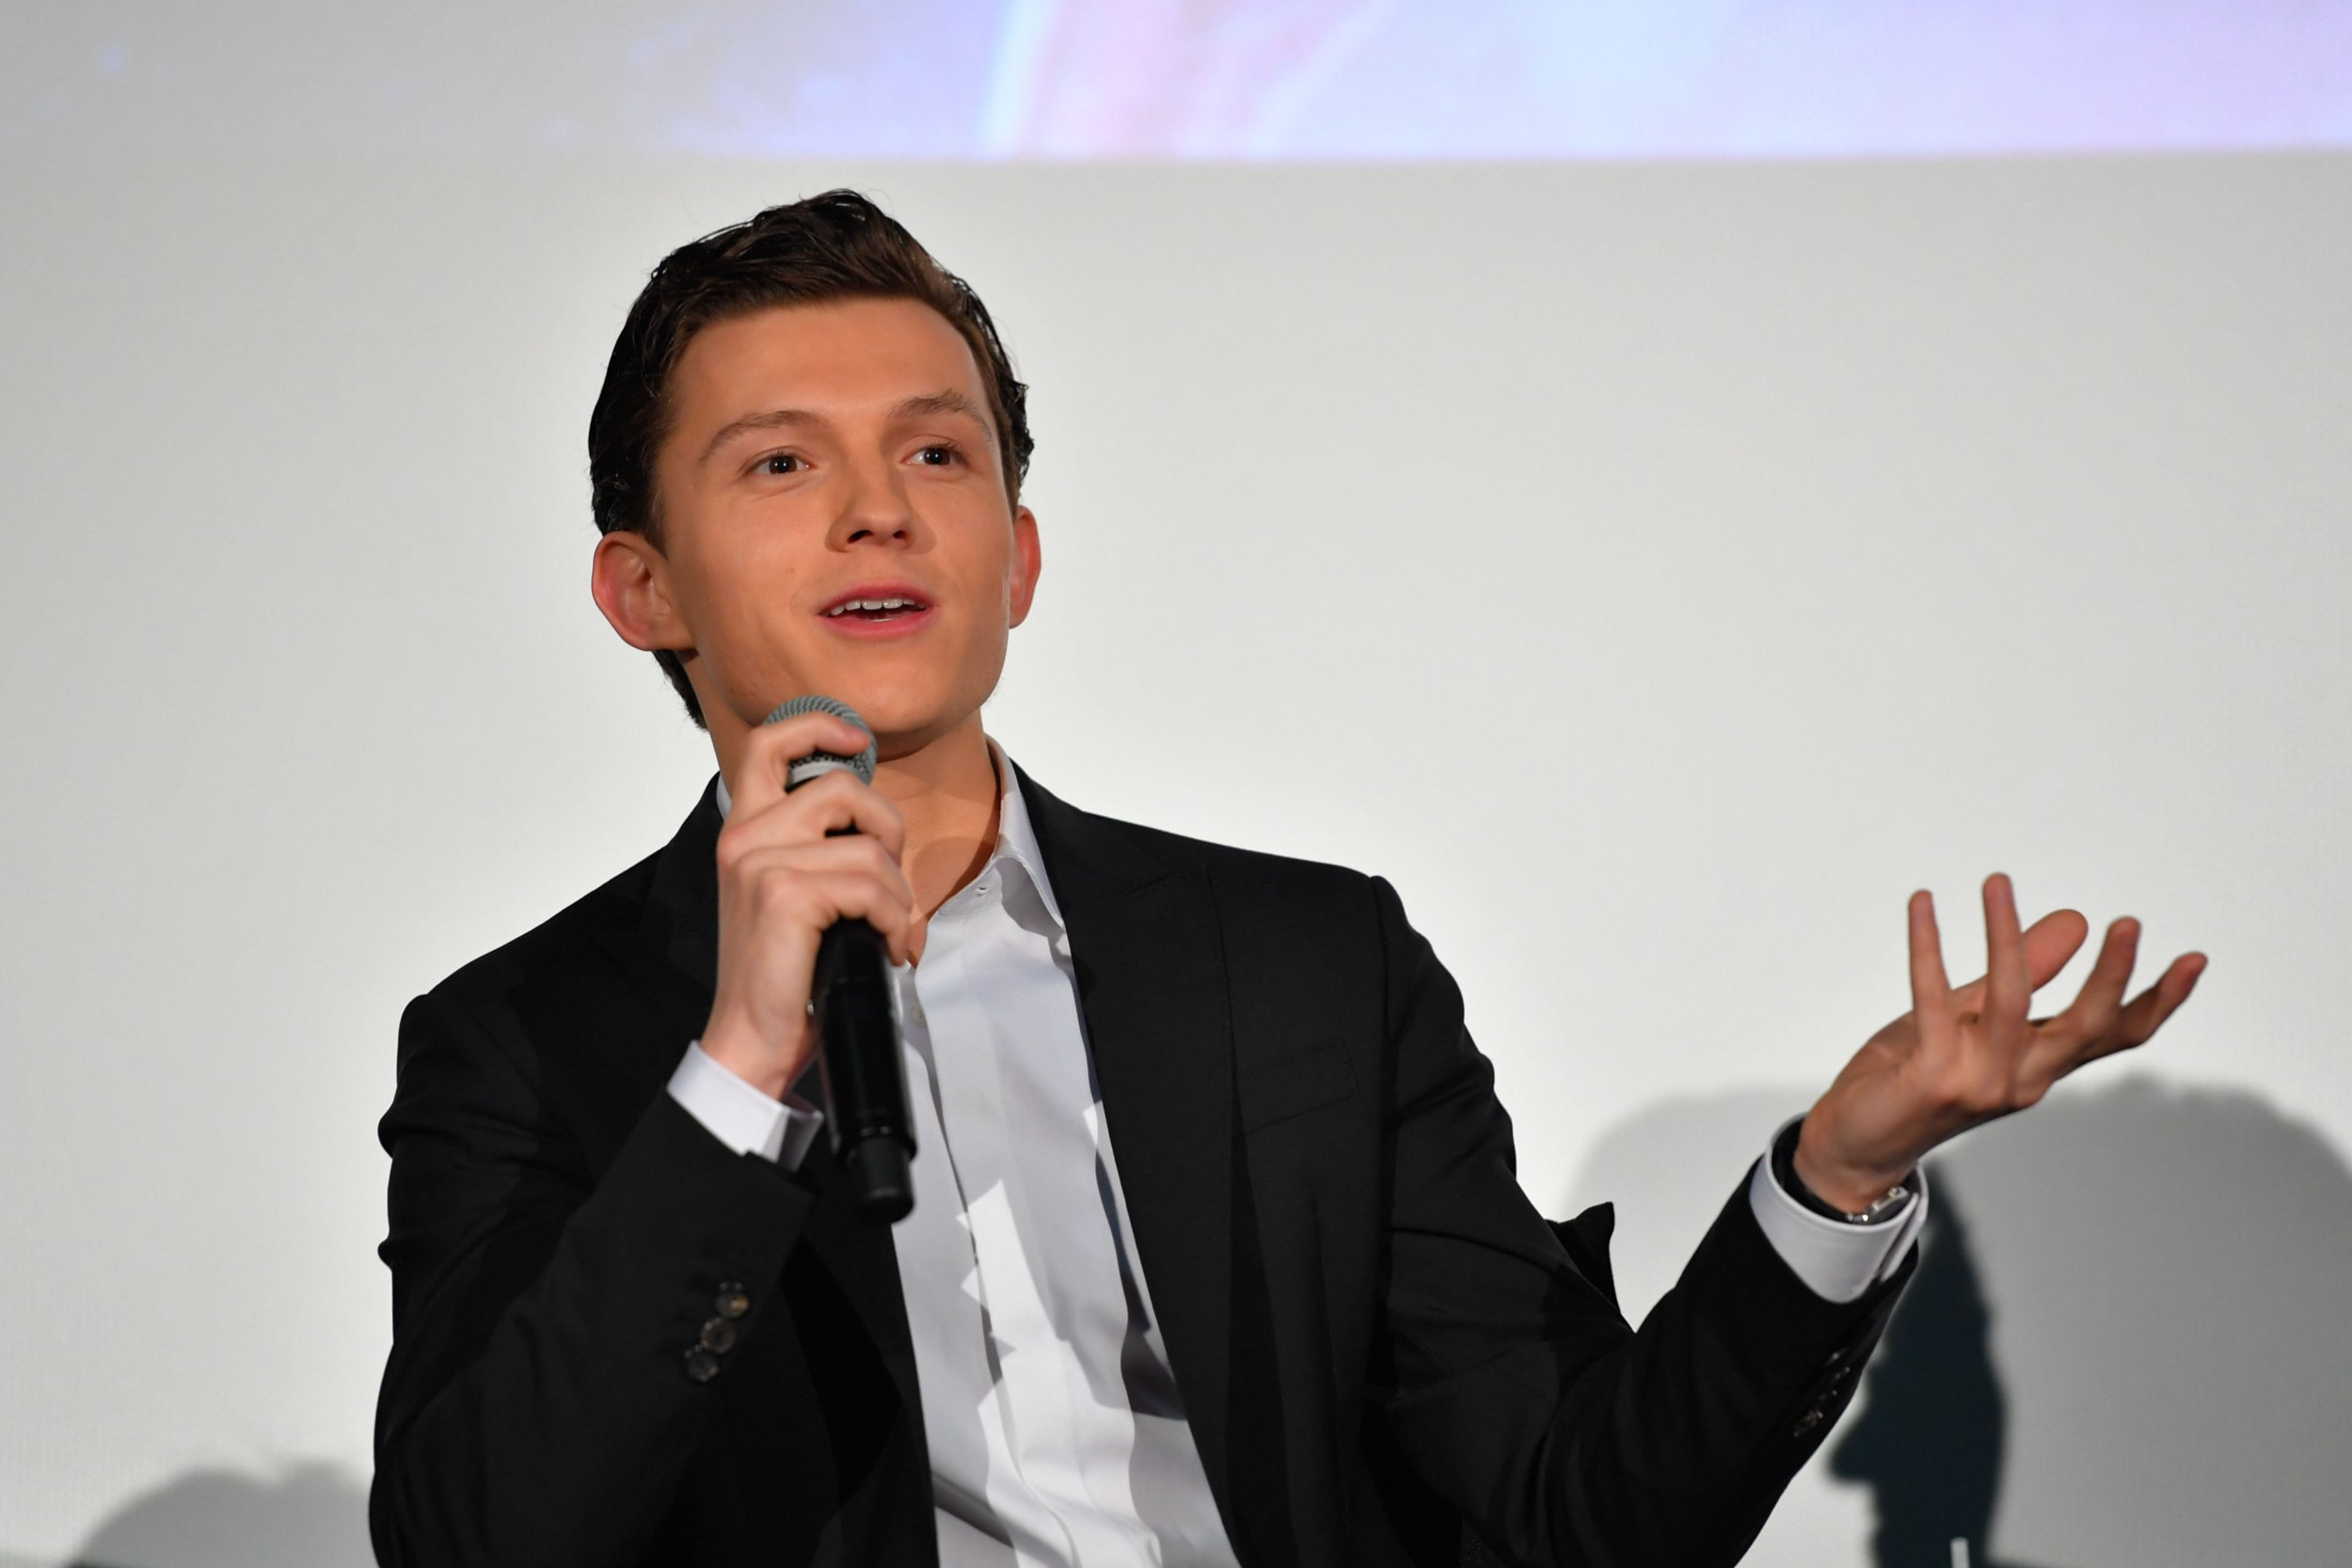 TOKYO, JAPAN - APRIL 16: Actor Tom Holland attends the fan event for 'Avengers Infinity War' Tokyo premiere at the TOHO Cinemas Hibiya on April 16, 2018 in Tokyo, Japan. (Photo by Koki Nagahama/Getty Images for Disney)